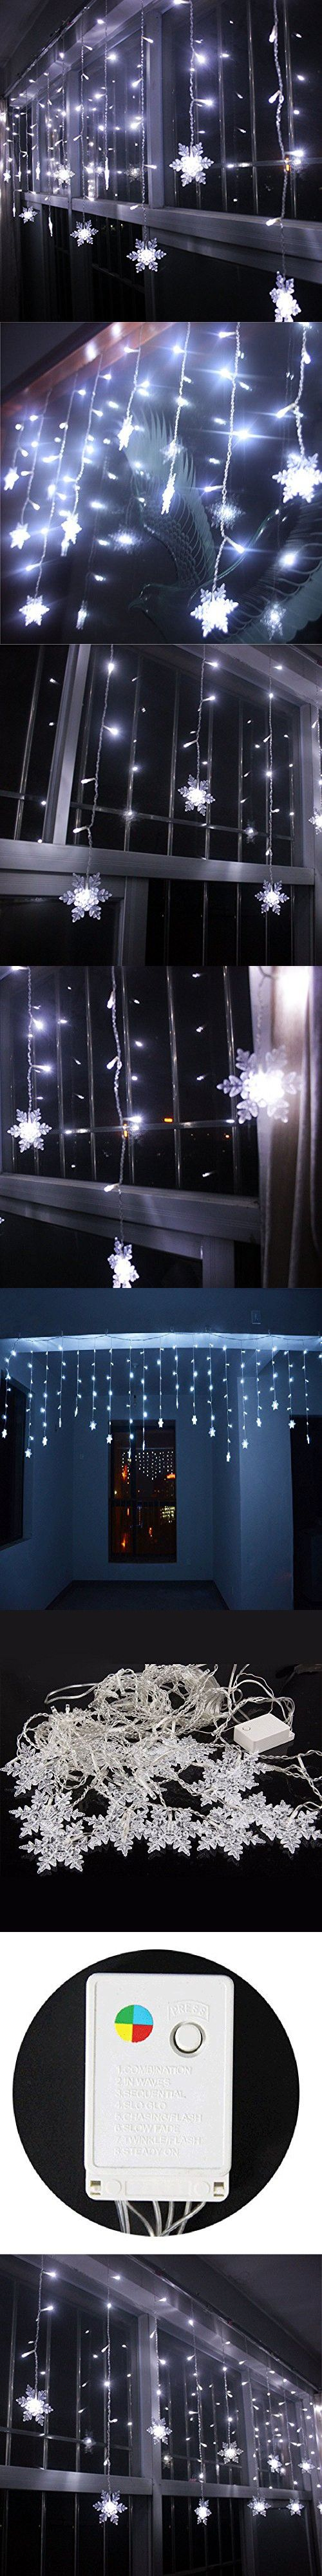 LIANGSM 3.5M 96 LED Fairy Lights Curtain Icicle Starry String Lights for Bedroom Christmas New Year Home Garden Wedding (snowflake white)